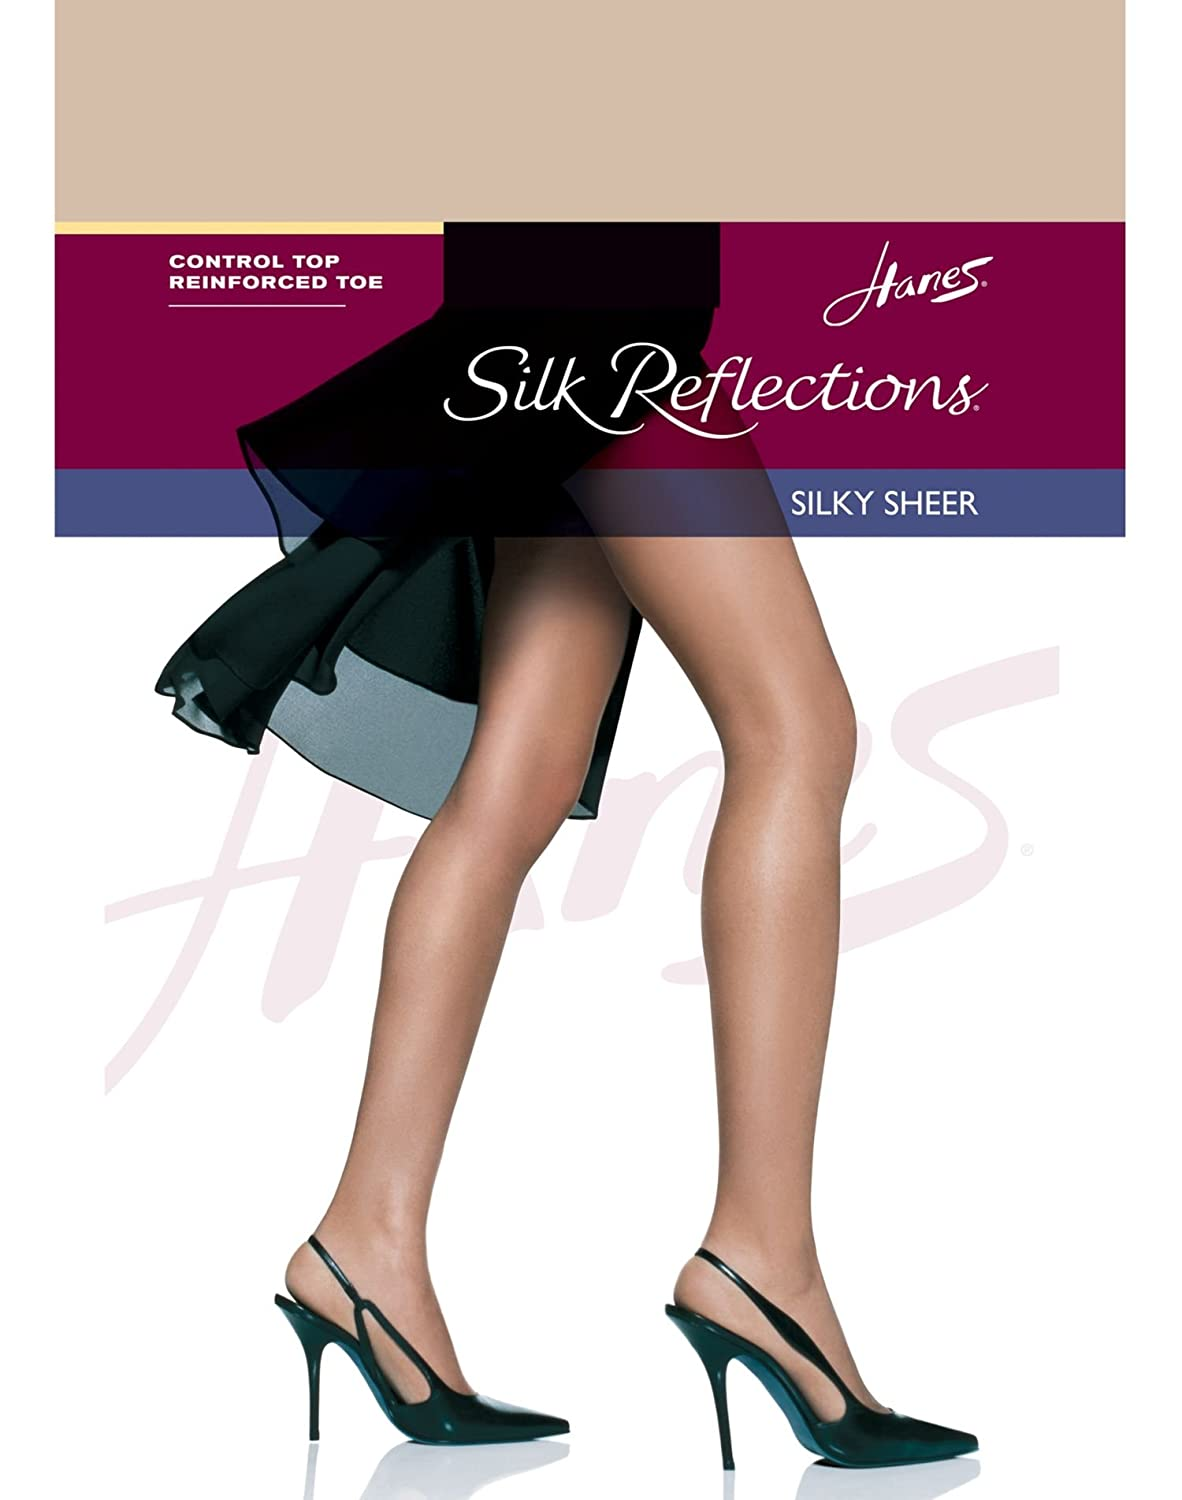 Hanes Womens Set of 3 Silk Reflections Control Top RT Pantyhose - Best-Seller! 11829-QL4